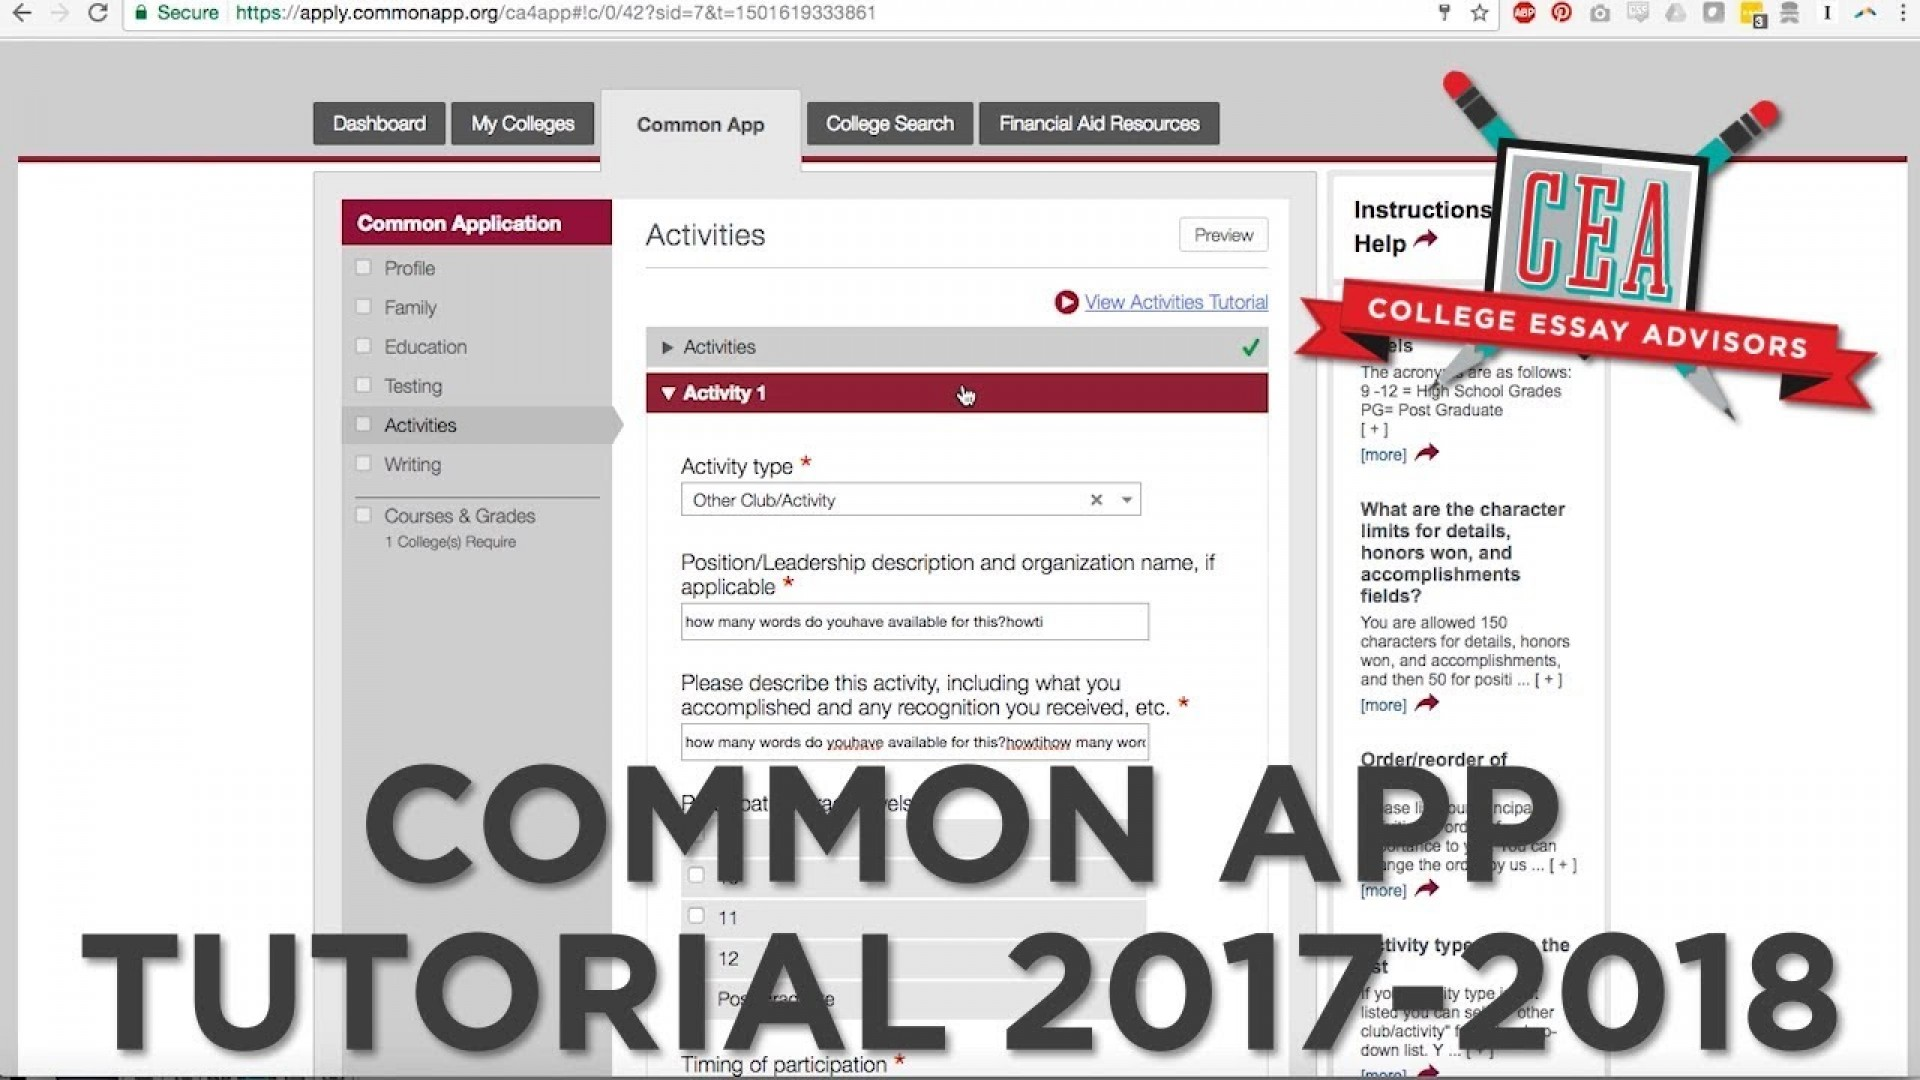 001 Maxresdefault Common App Essay Astounding 2017 18 2017-18 Questions 17-18 1920